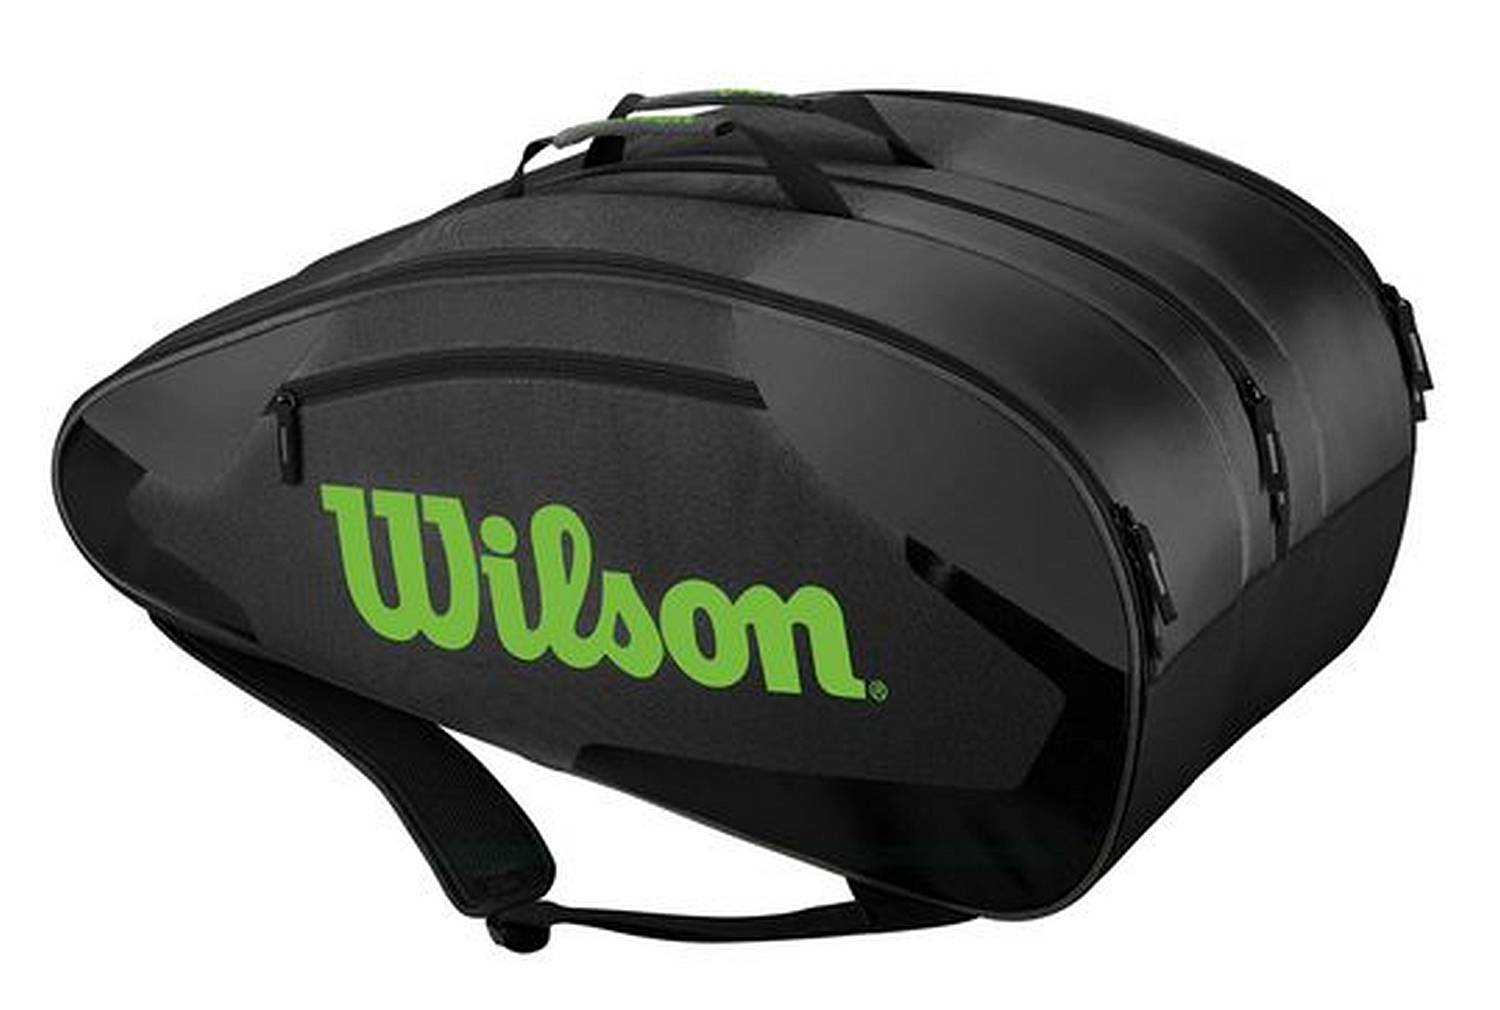 6c12bade87d4c WILSON Tour Team Tennis-Tasche